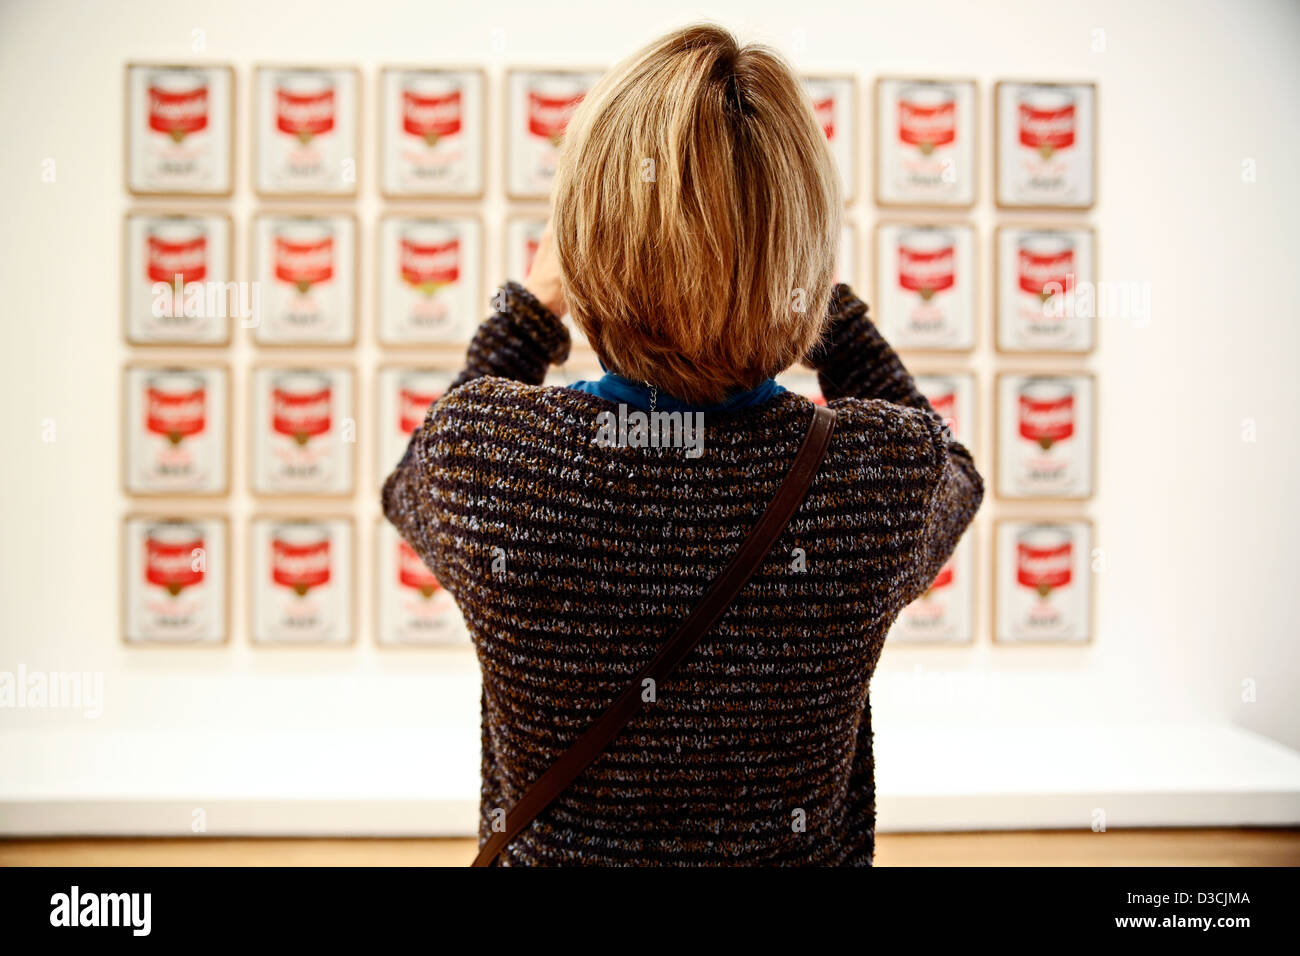 Woman Photographing Andy Warhol's Campbell Soup Series, Museum of Modern Art, MOMA, New York, NY, USA - Stock Image